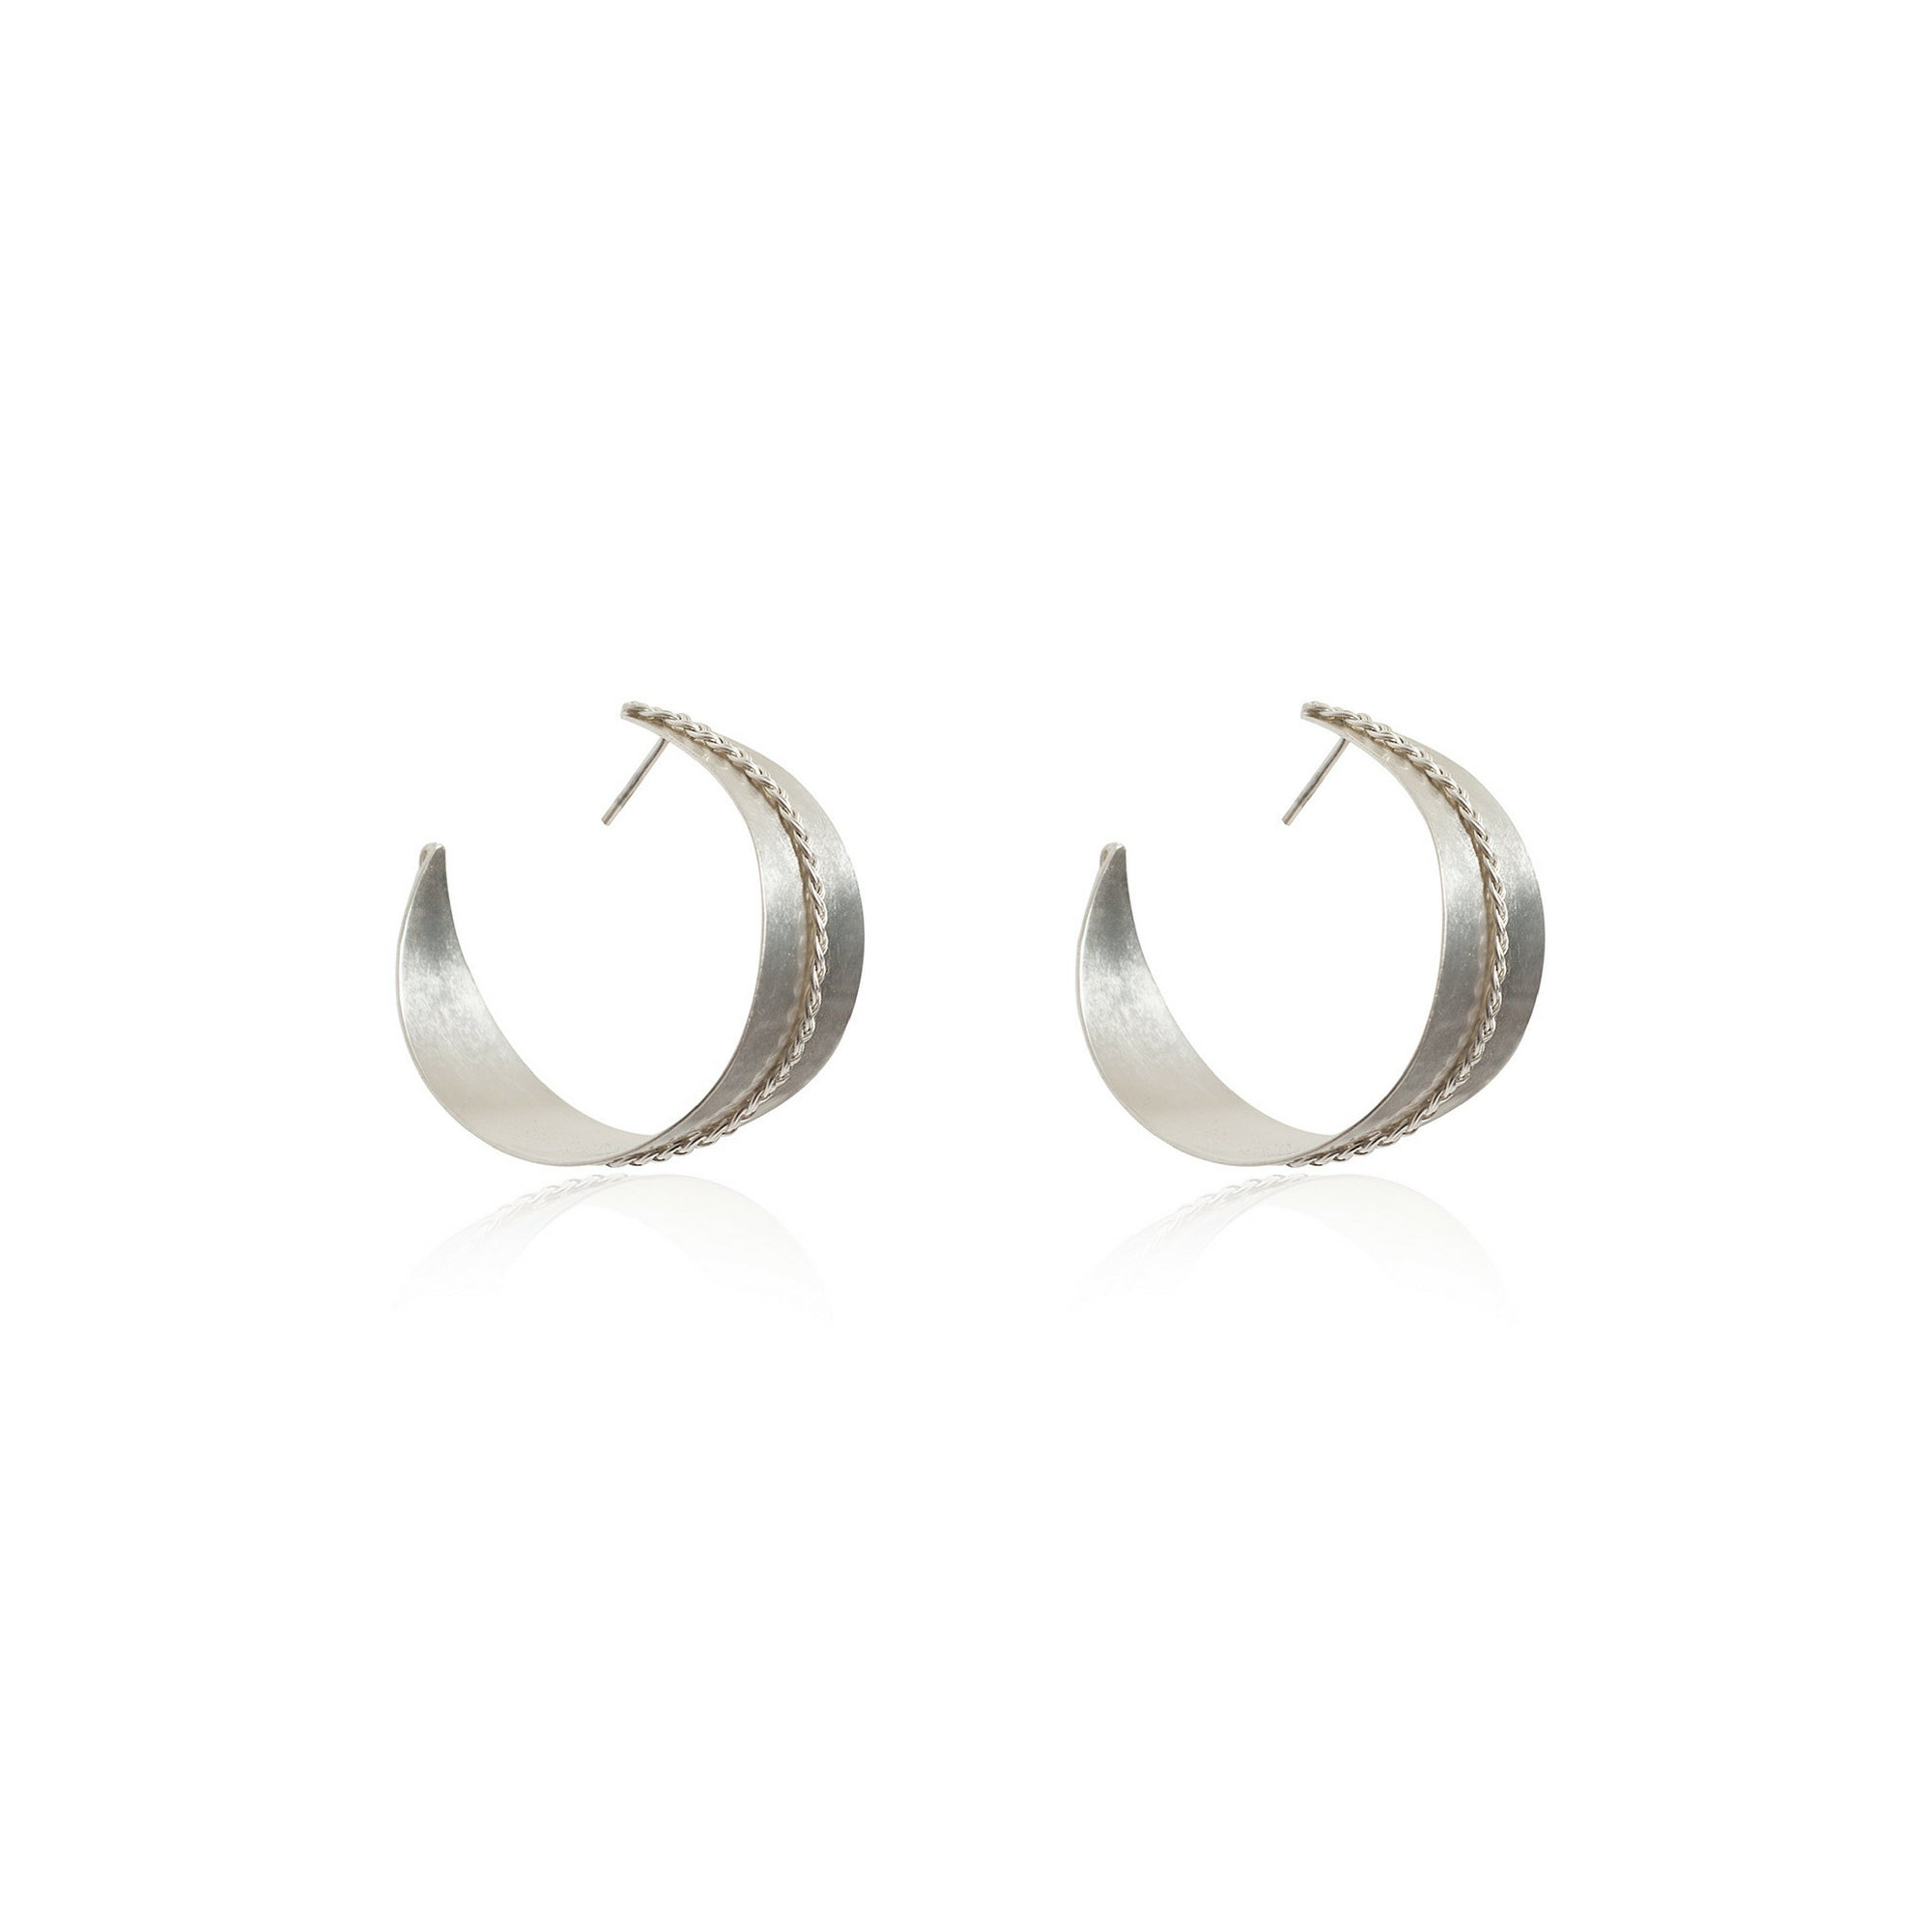 Liza Echeverry Jewelry Colombia Grand Arque Earrings White Gold